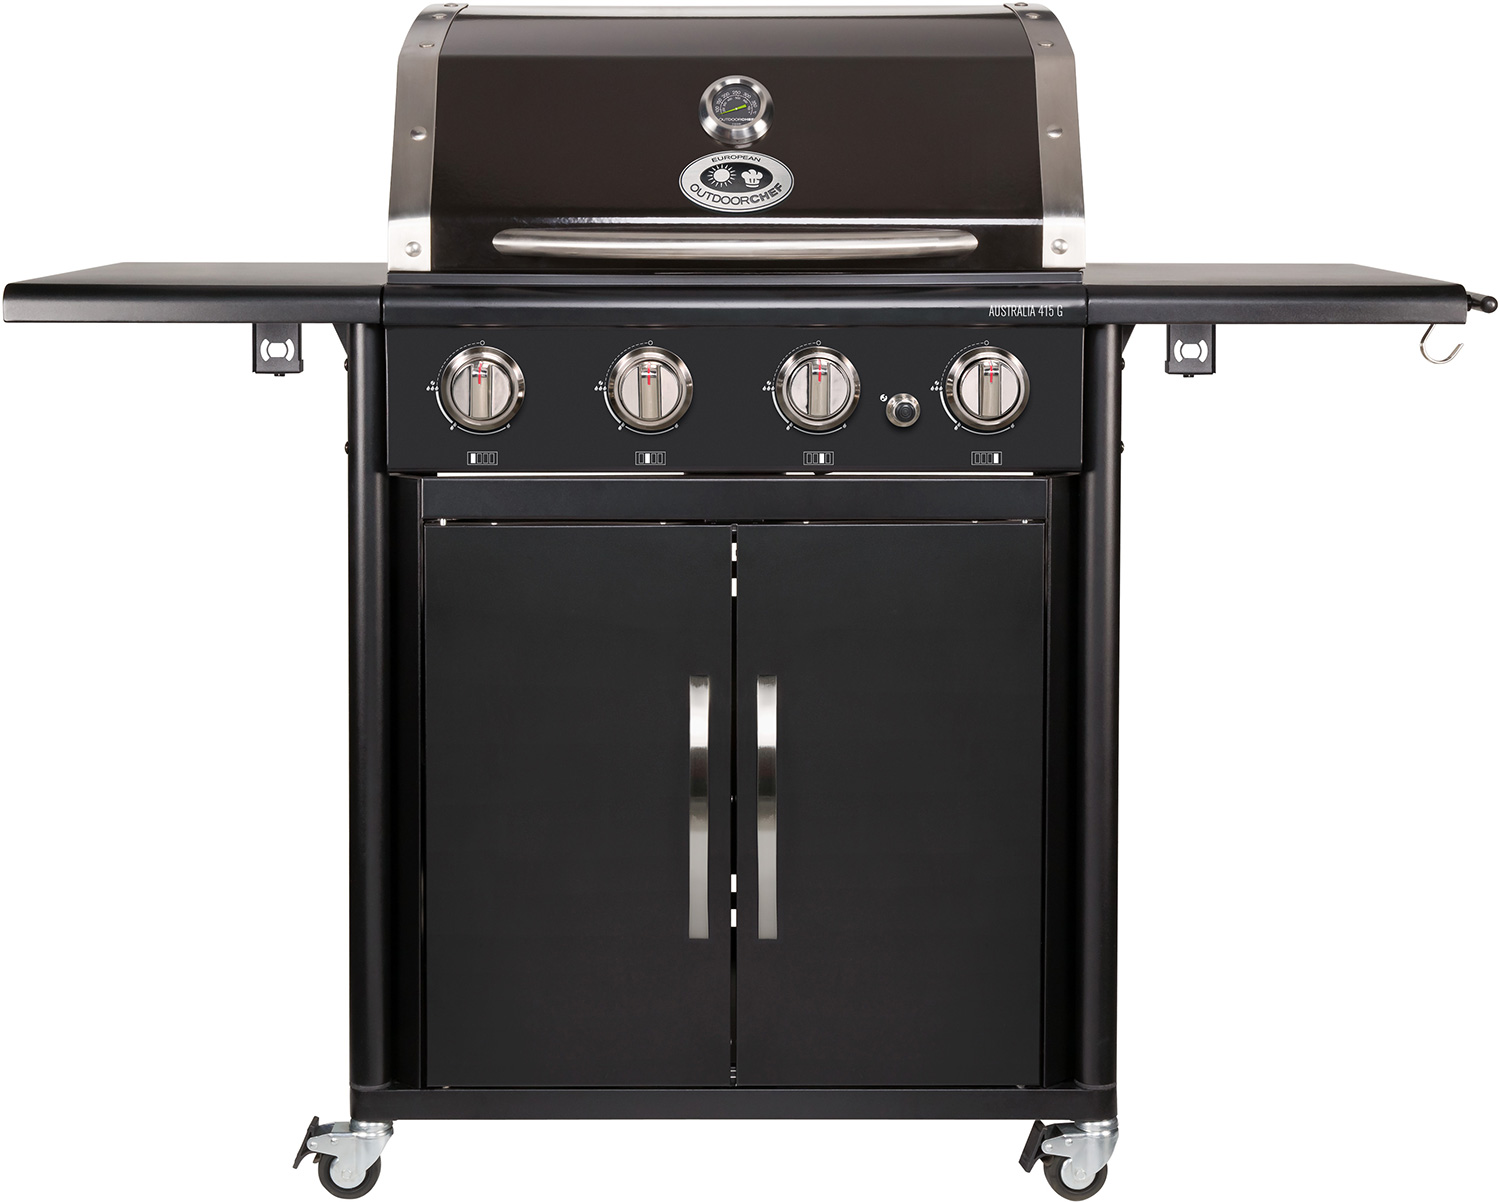 outdoorchef gasgrill australia 415 g kaufen grillstation. Black Bedroom Furniture Sets. Home Design Ideas